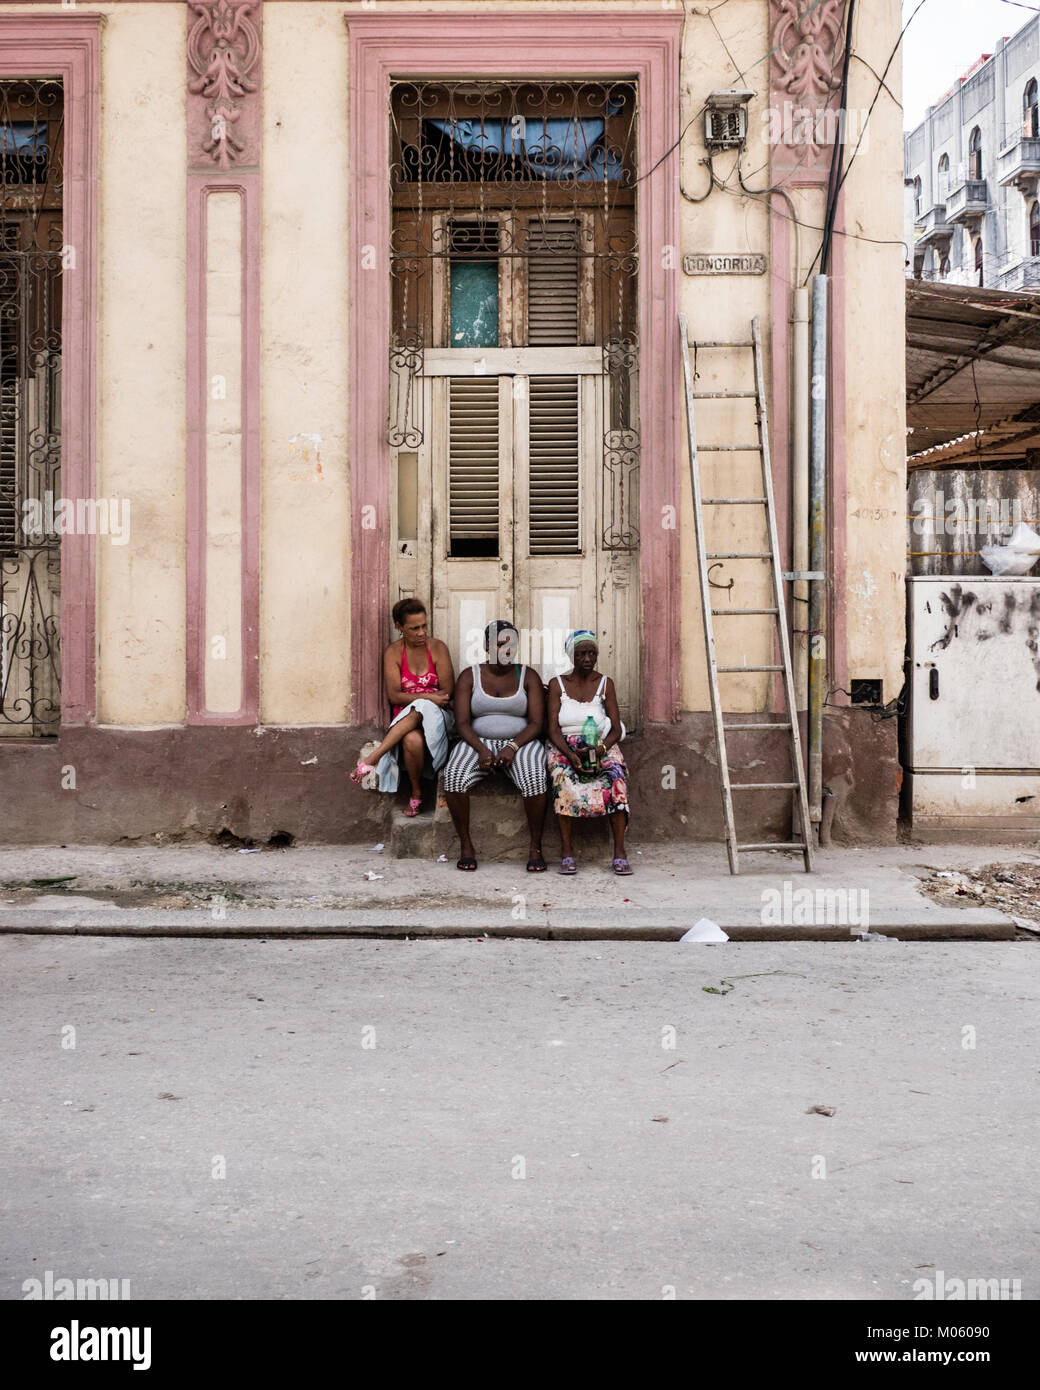 Three Afro Caribbean females relax on a stone step outside a doorway to a property in Havana, Cuba - Stock Image